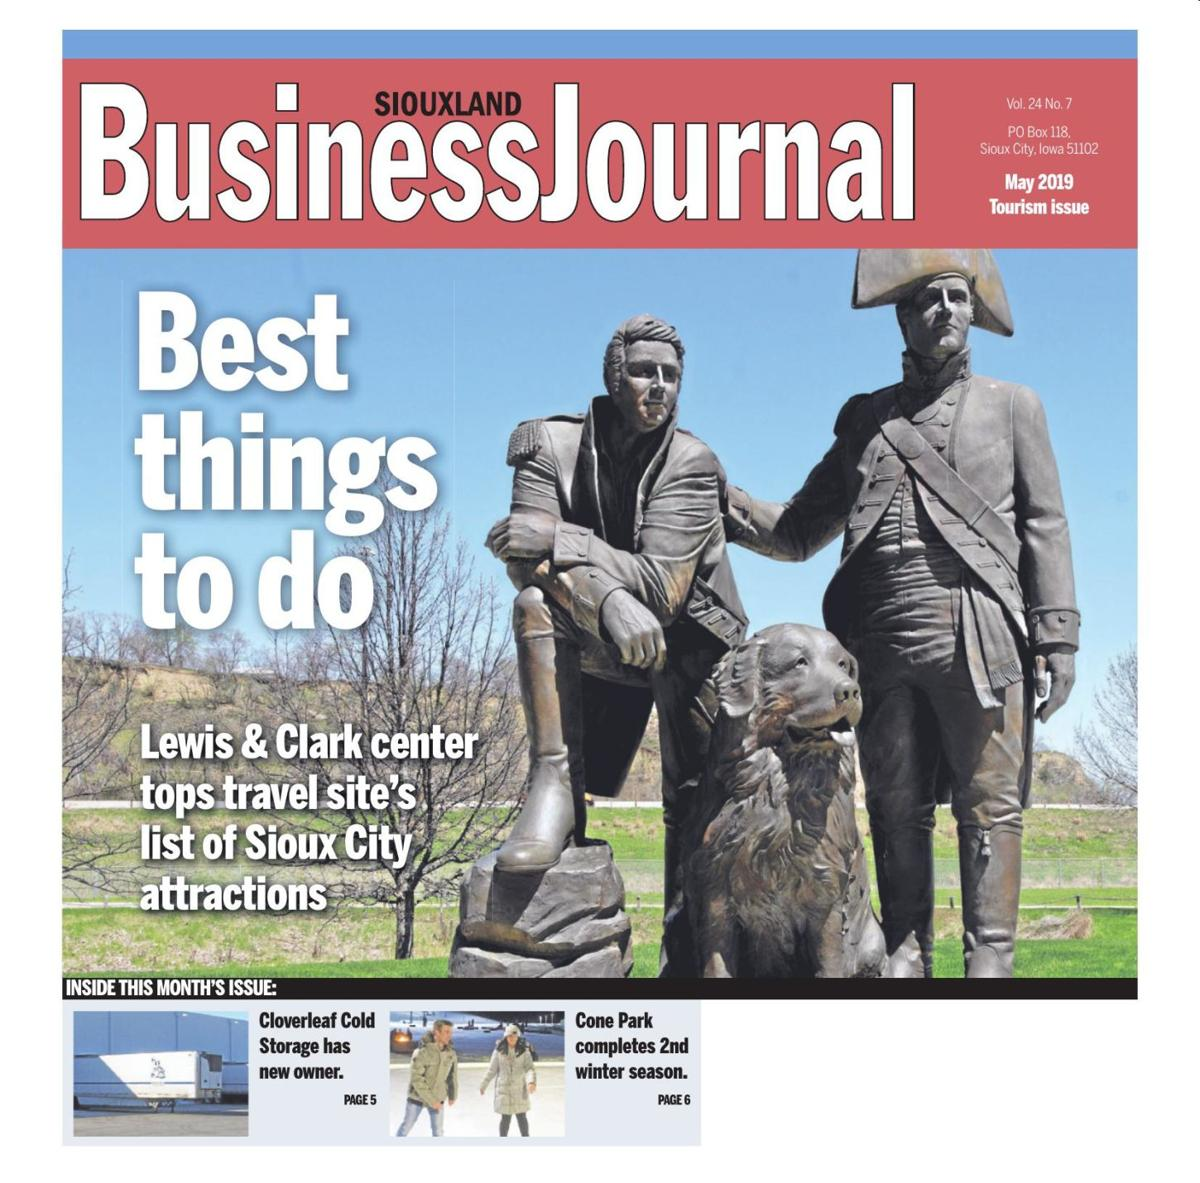 Siouxland Business Journal - May 2019